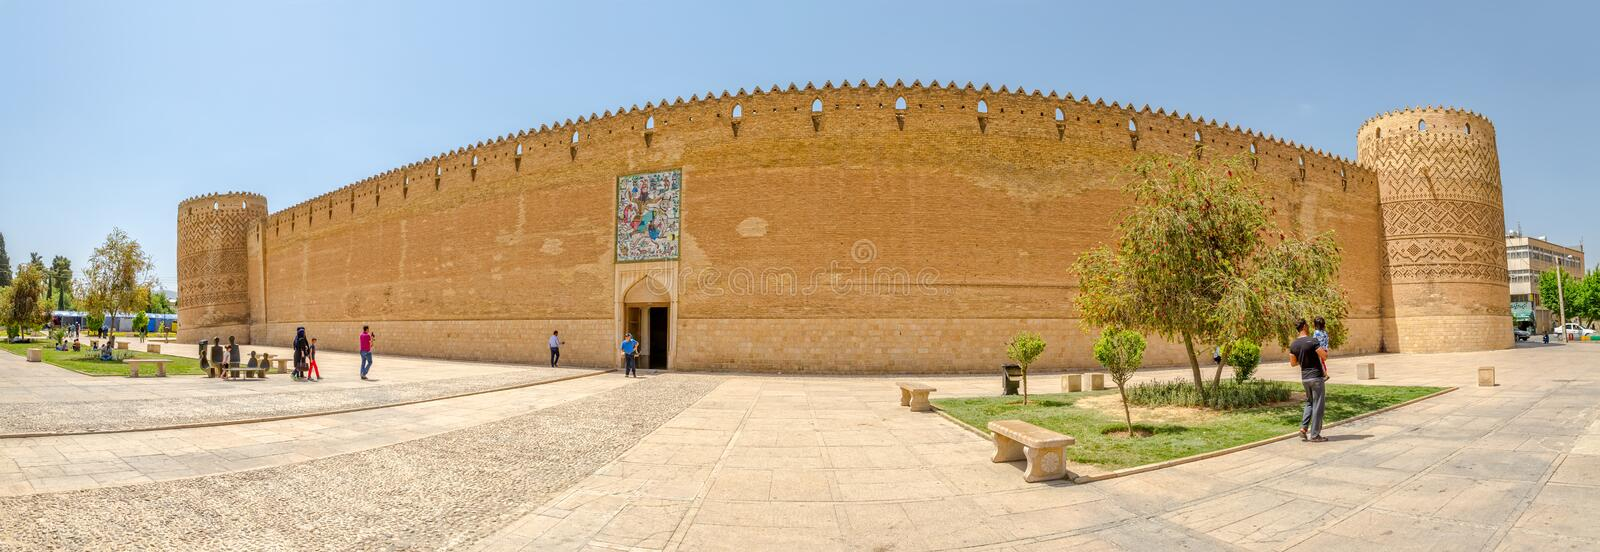 Shiraz Arg of Karim Khan panorama royalty free stock photo